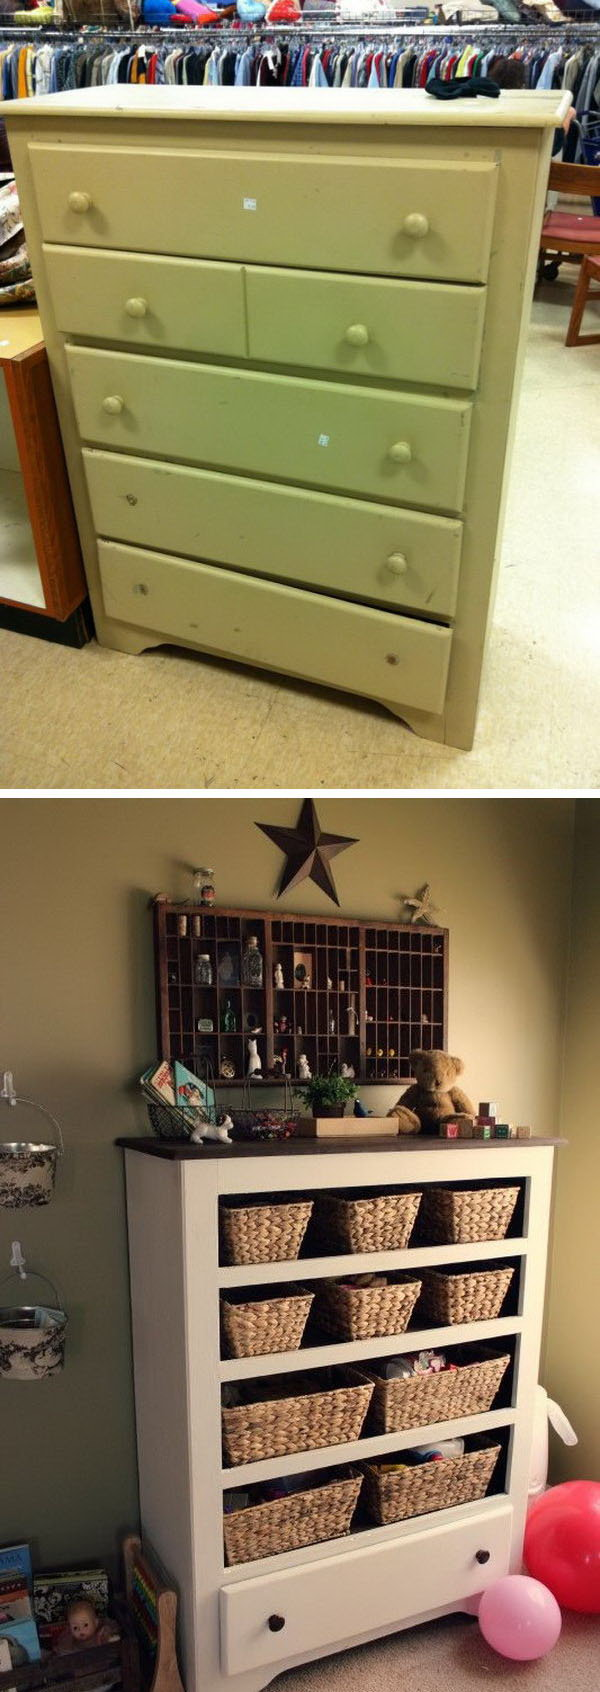 11 Turn a $950 Thrift Store Drawer into Funny Functional Storage or Craft Supplies